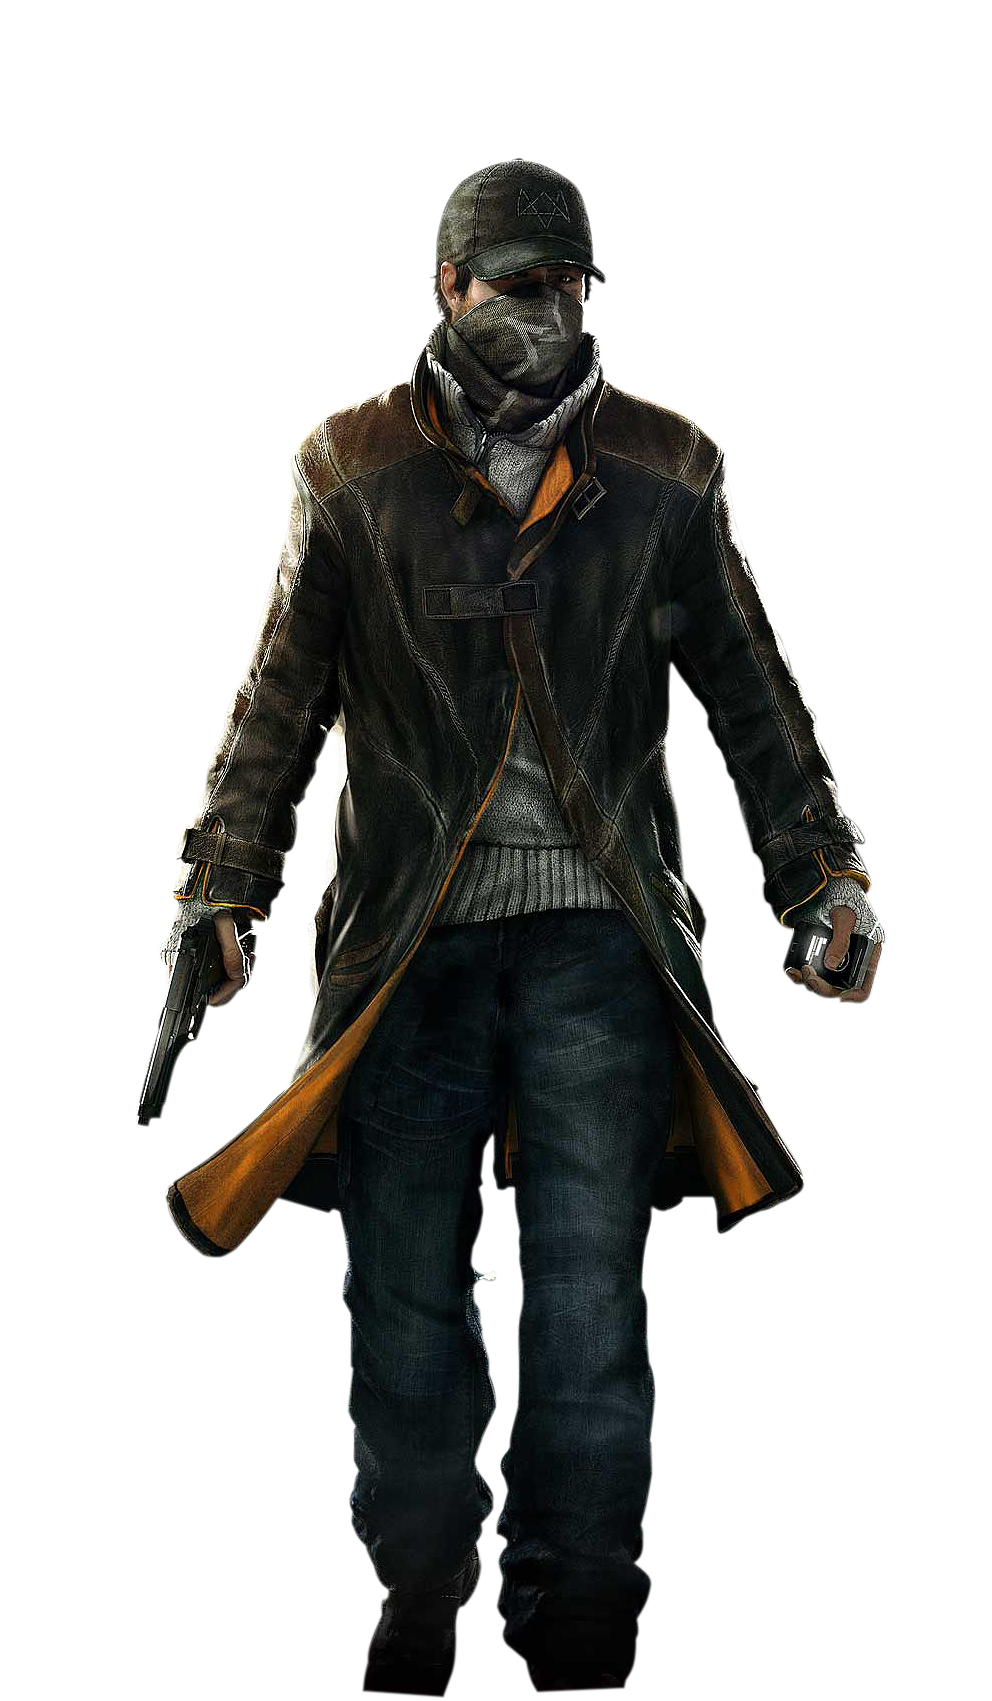 Watch Dogs PNG - 547